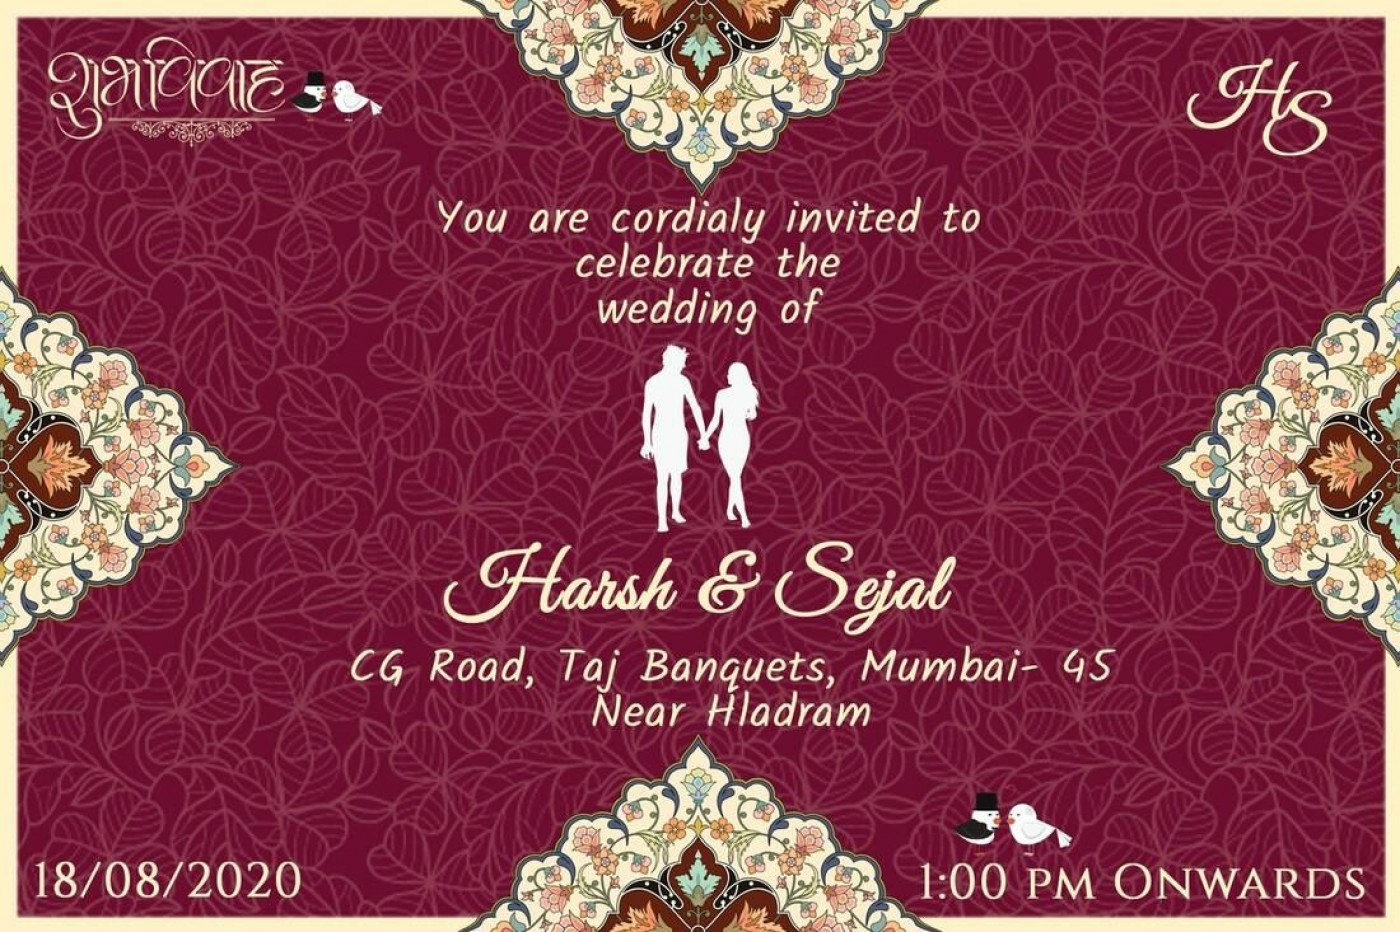 008 Staggering Free Online Indian Wedding Invitation Card Template Picture 1400